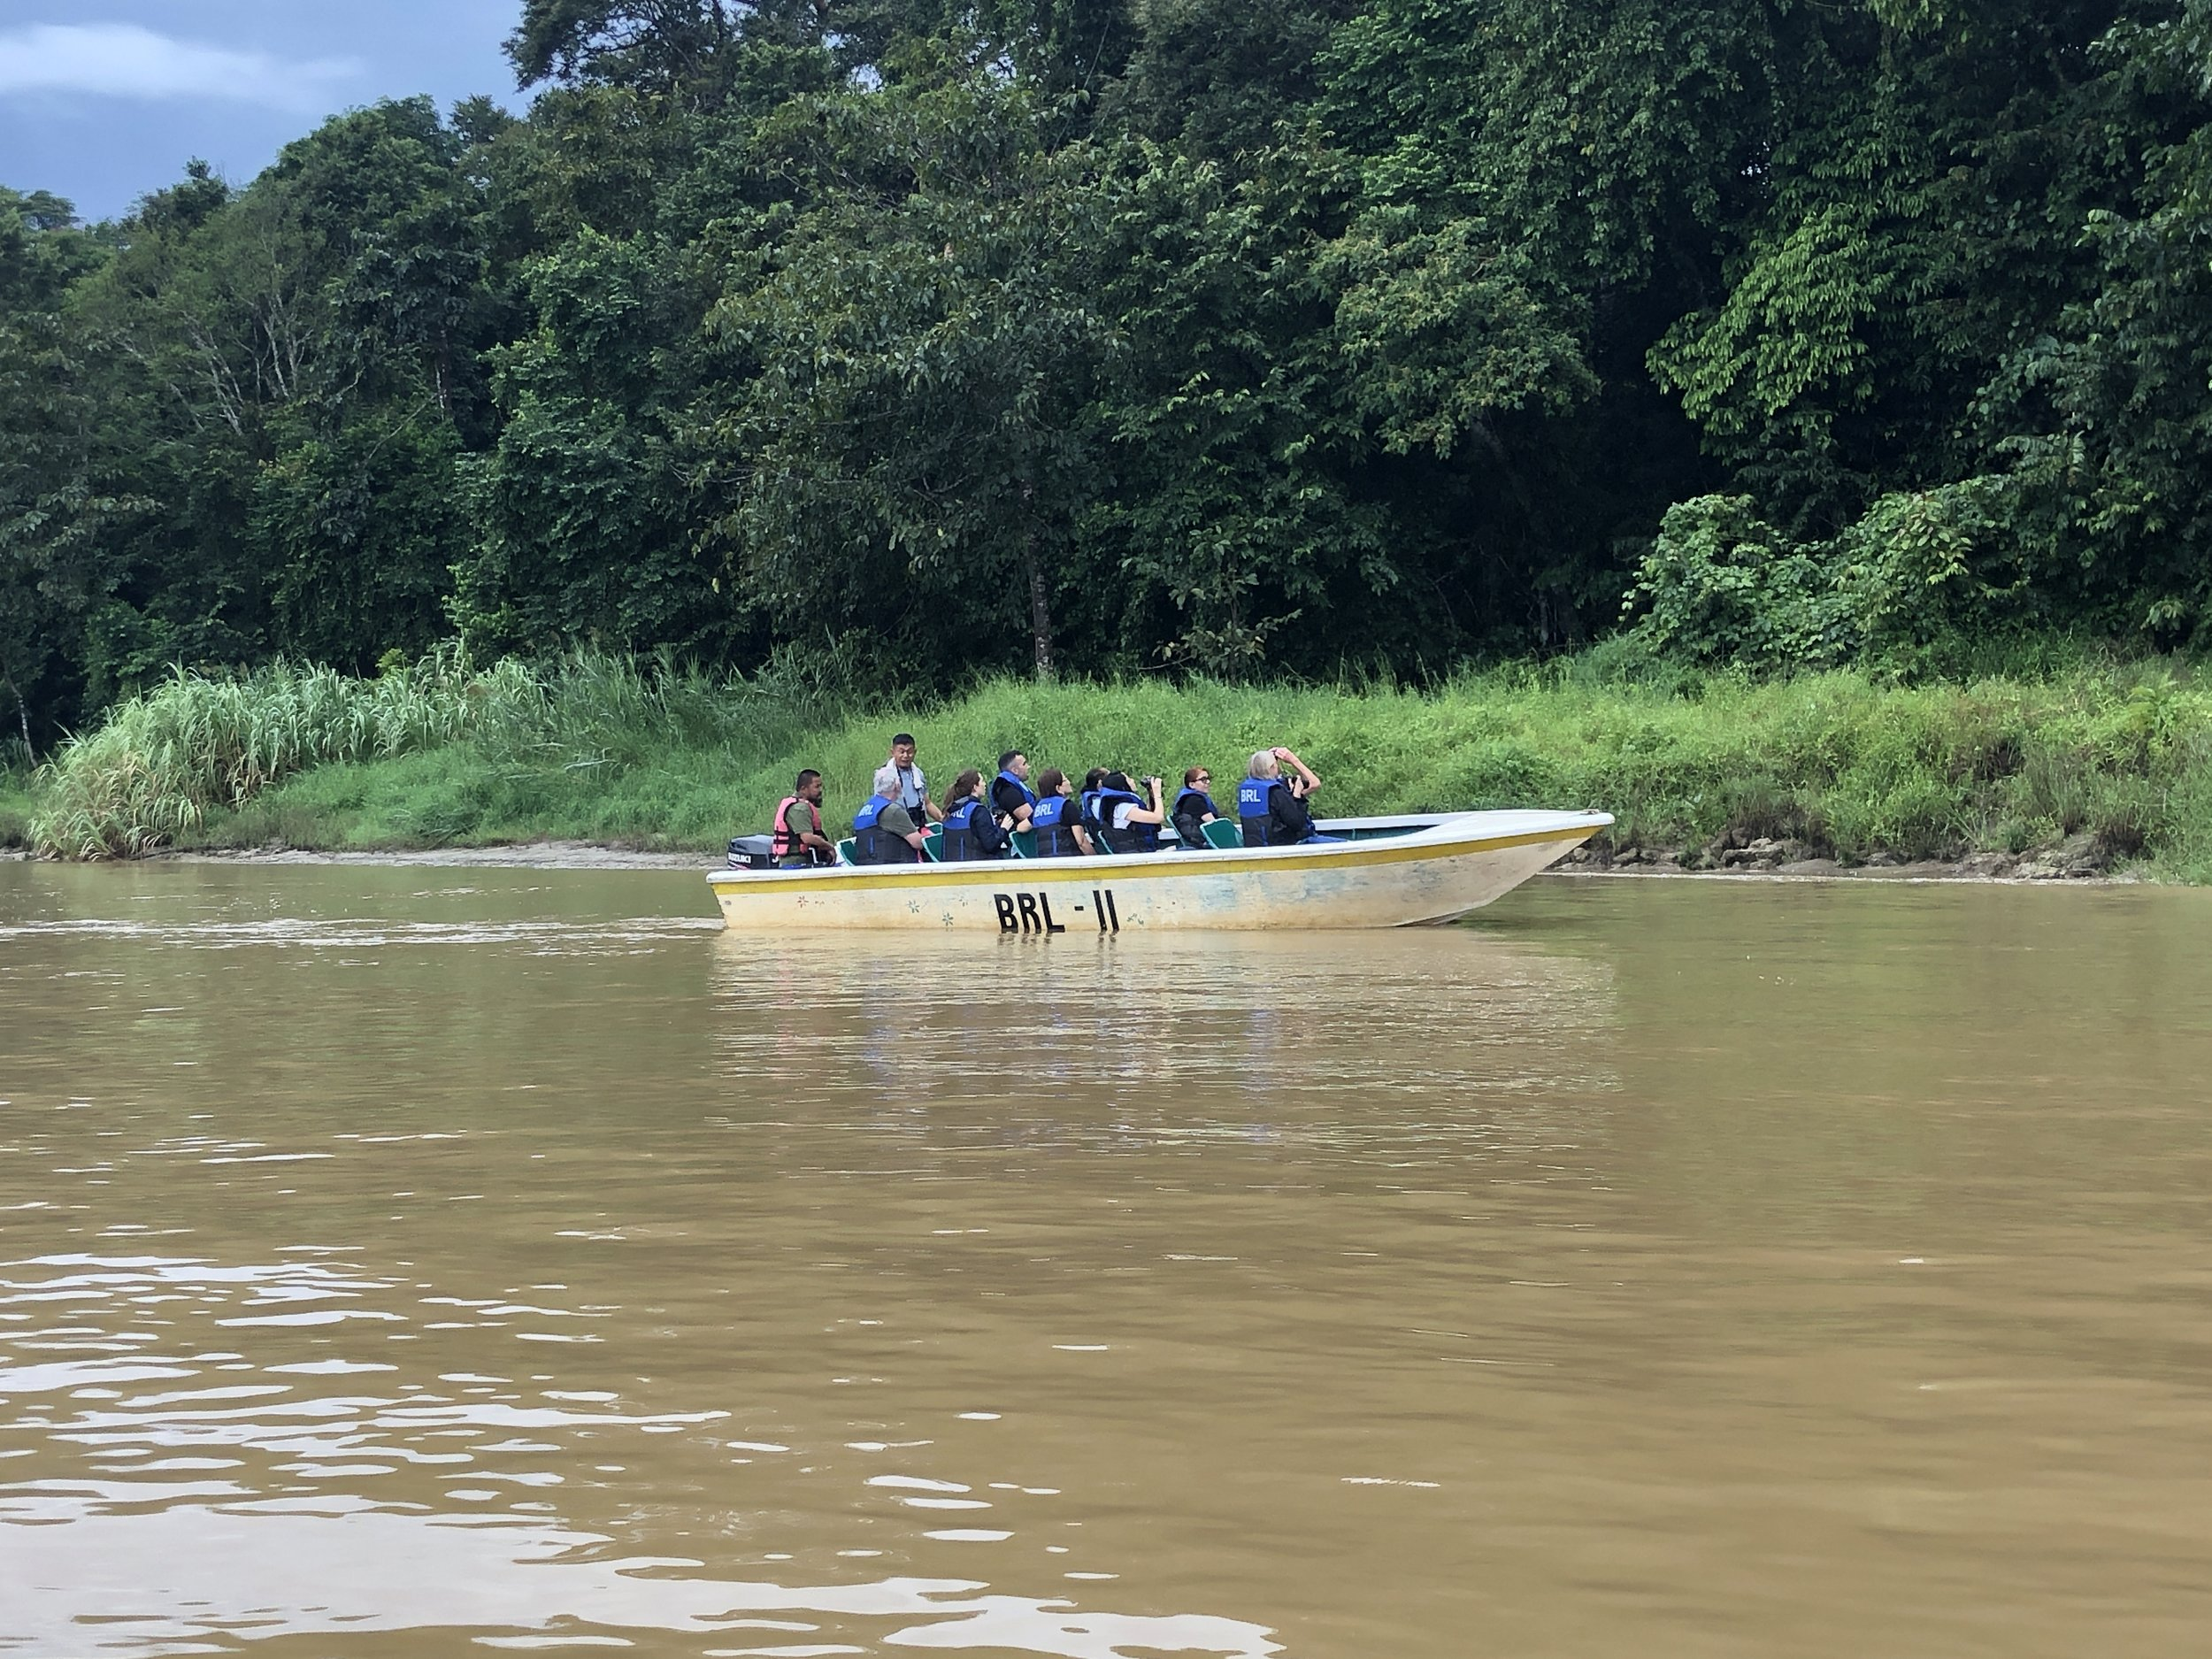 Searching for wildlife in their natural habitat on the River Kinabatangan